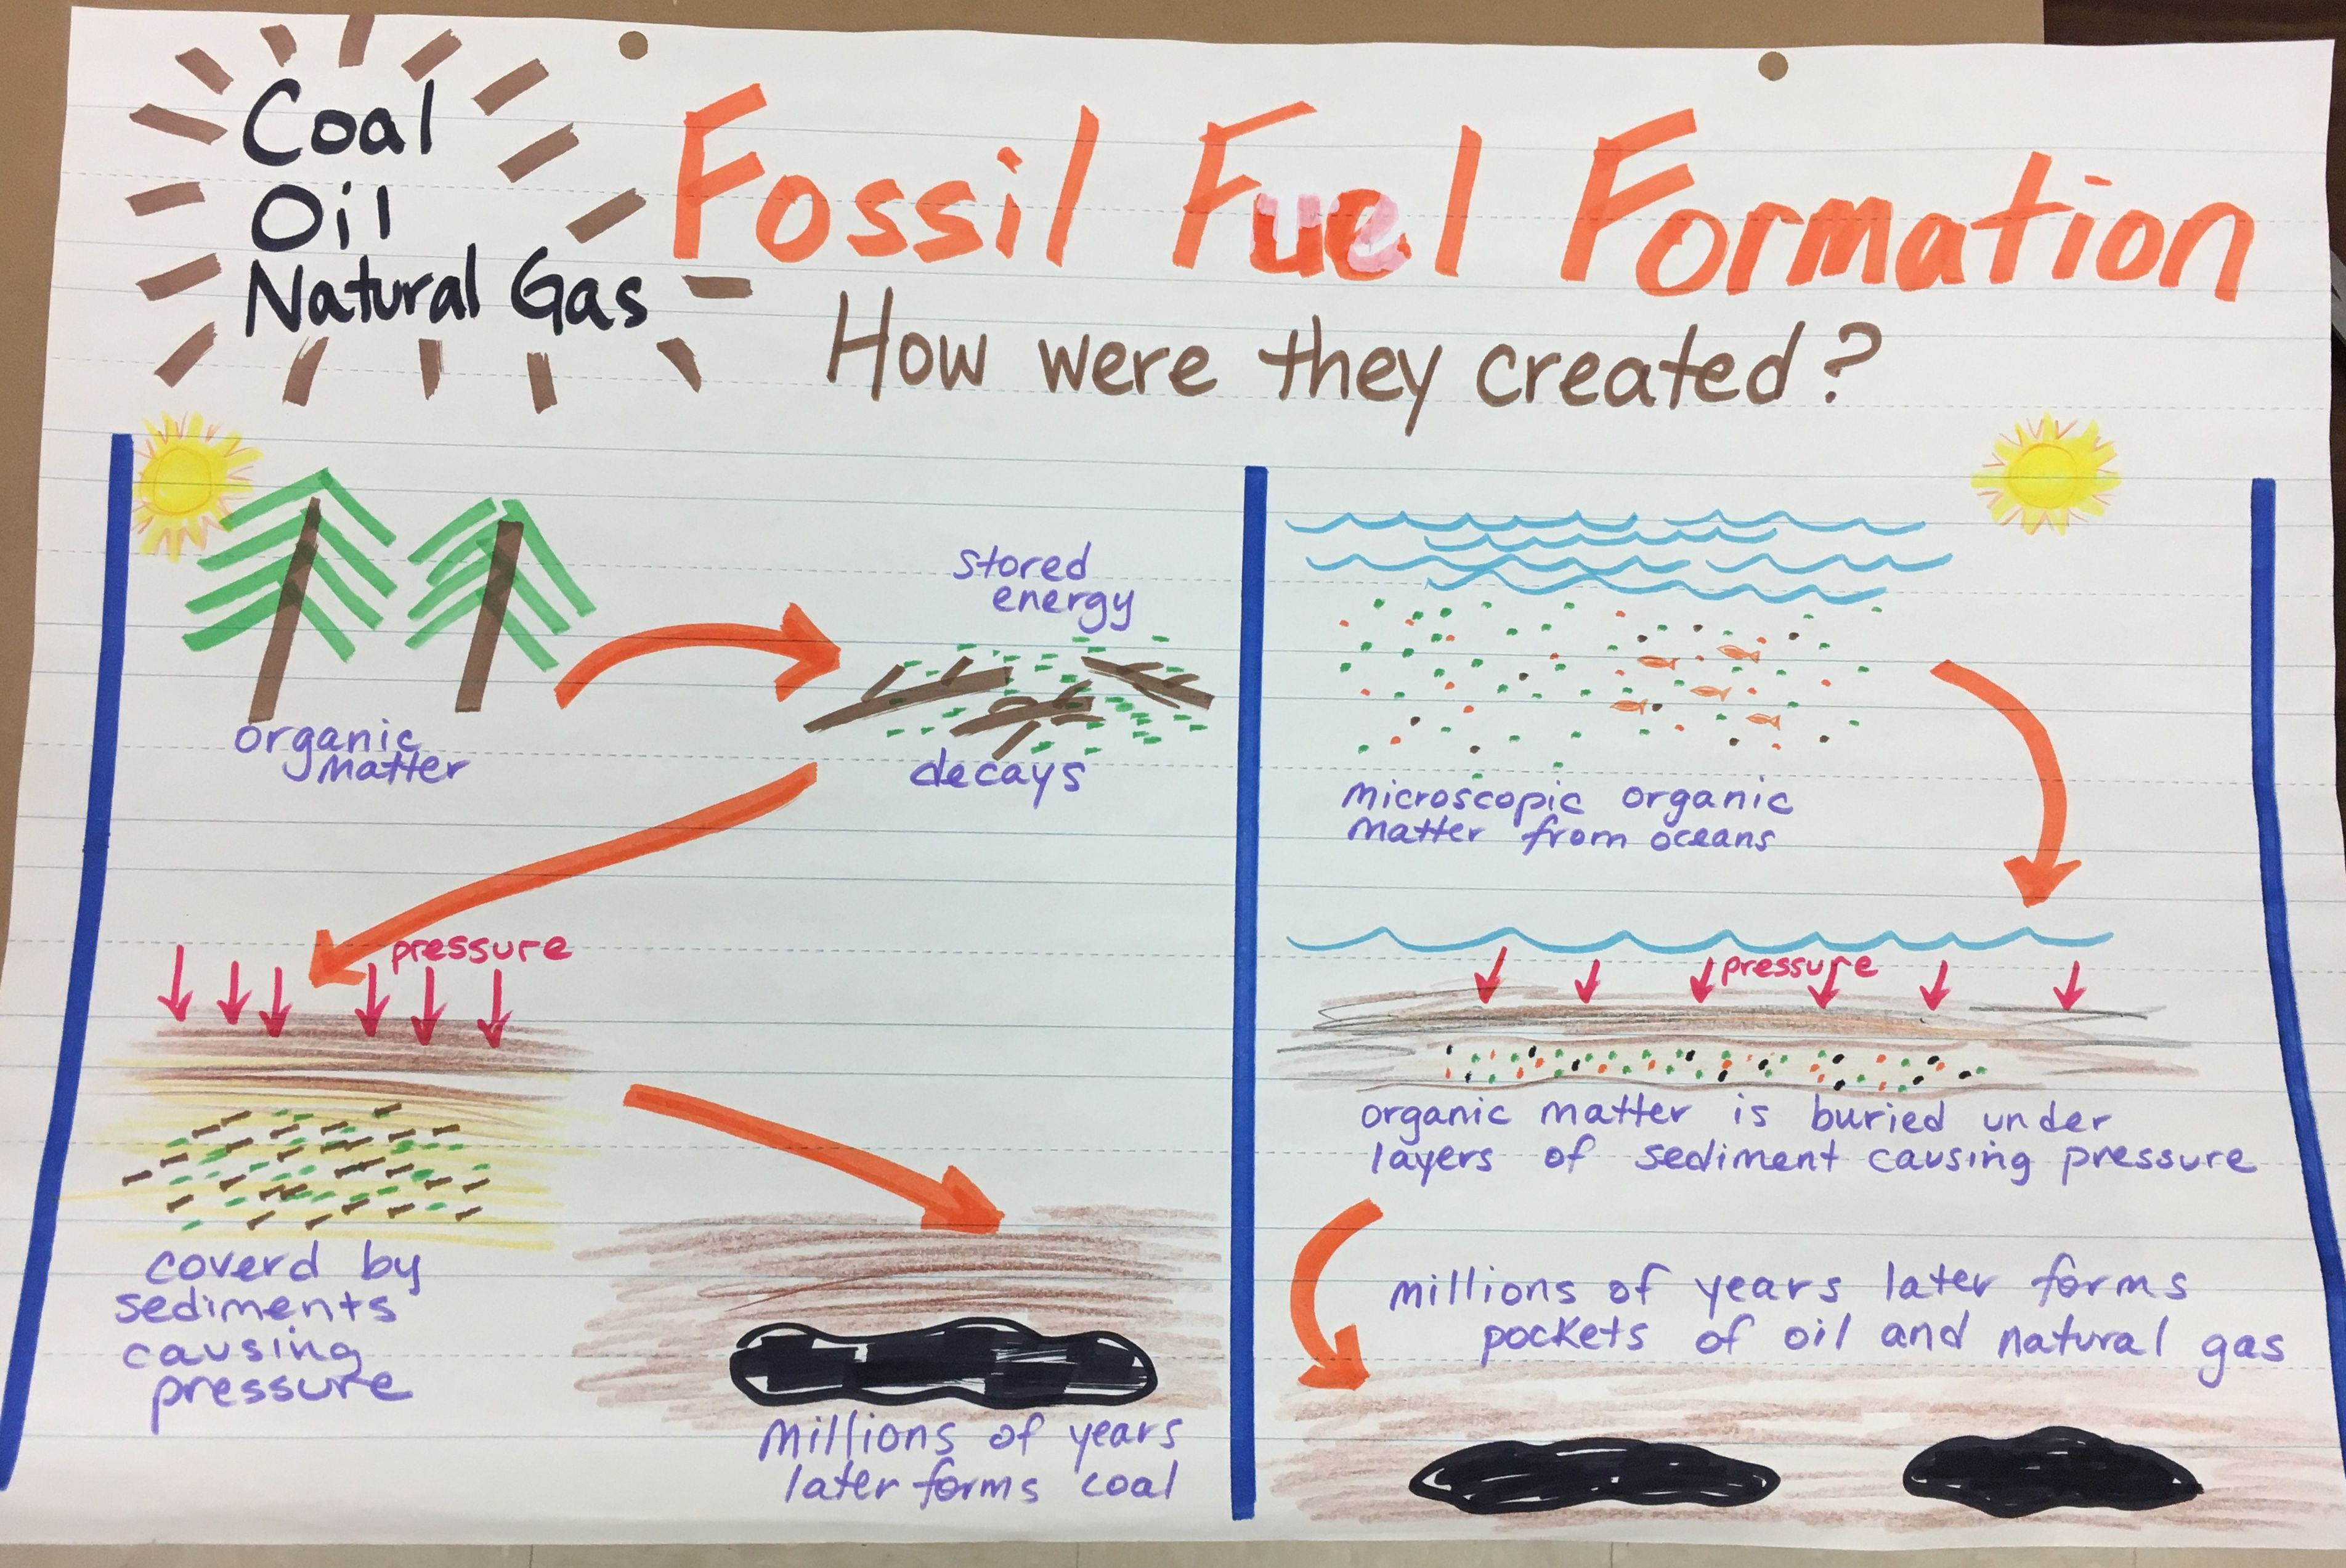 Fossil Fuel Formation Coal Oil Natural Gas 5th Grade Science Teks